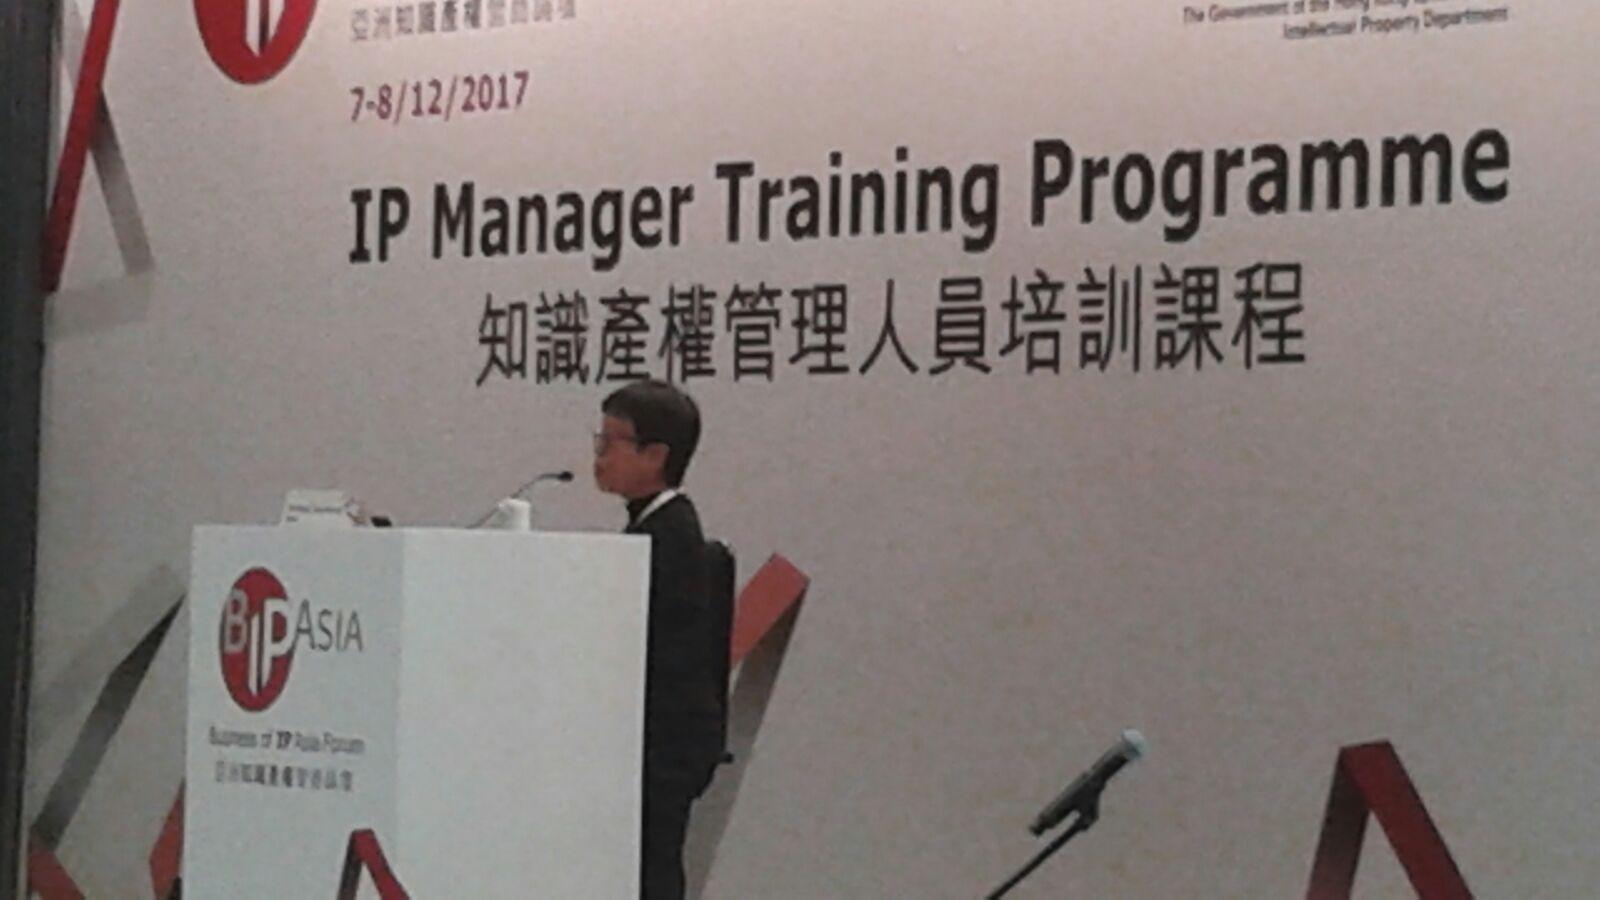 Our Ms. Rosa Pang gave training to IP Managers on 7 December 2017